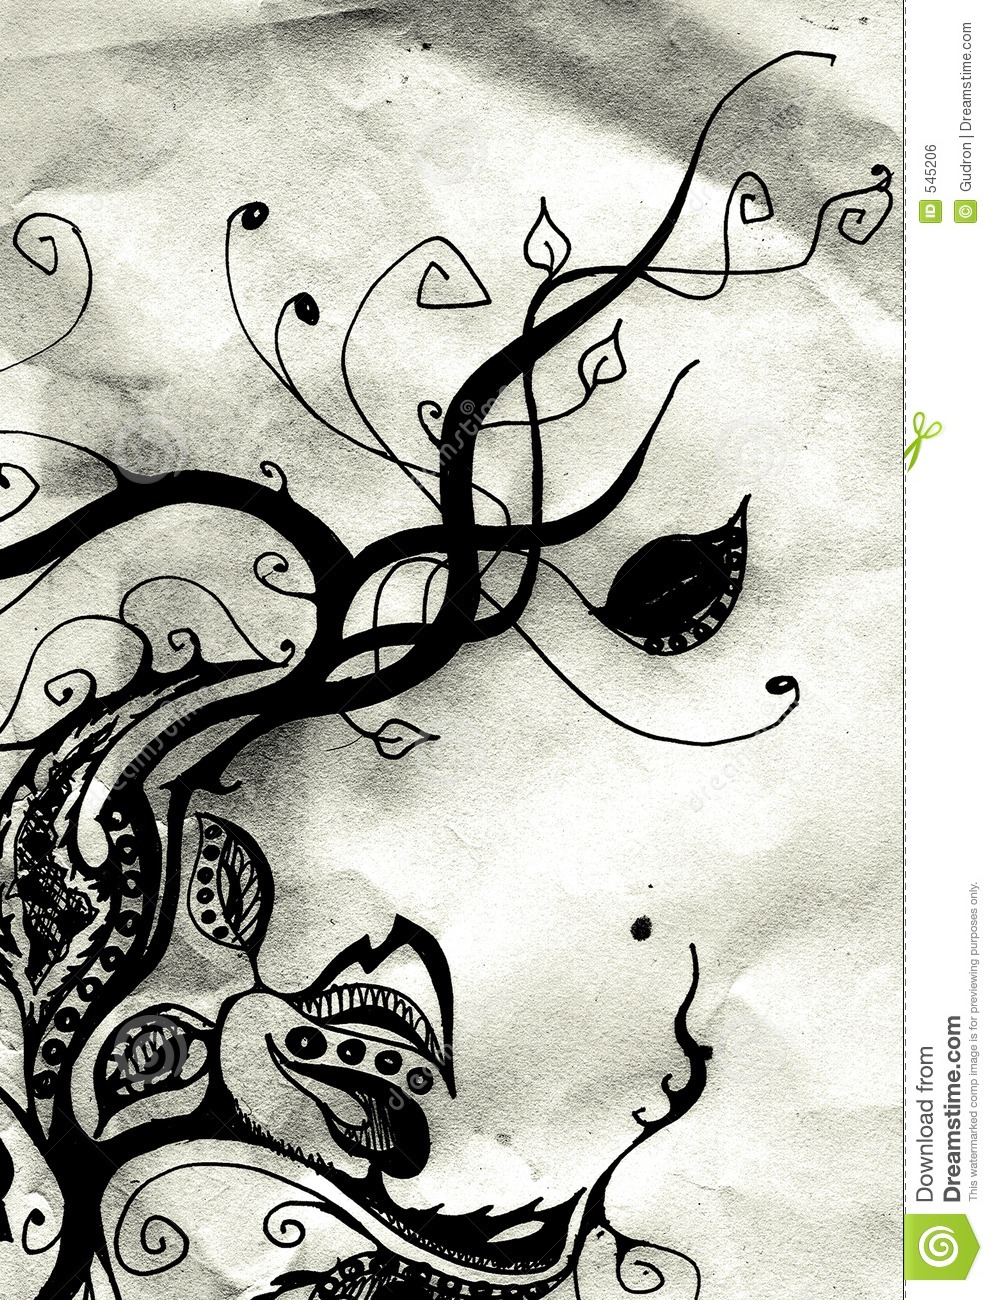 floral designs to draw on paper. royaltyfree stock photo download old floral design designs to draw on paper